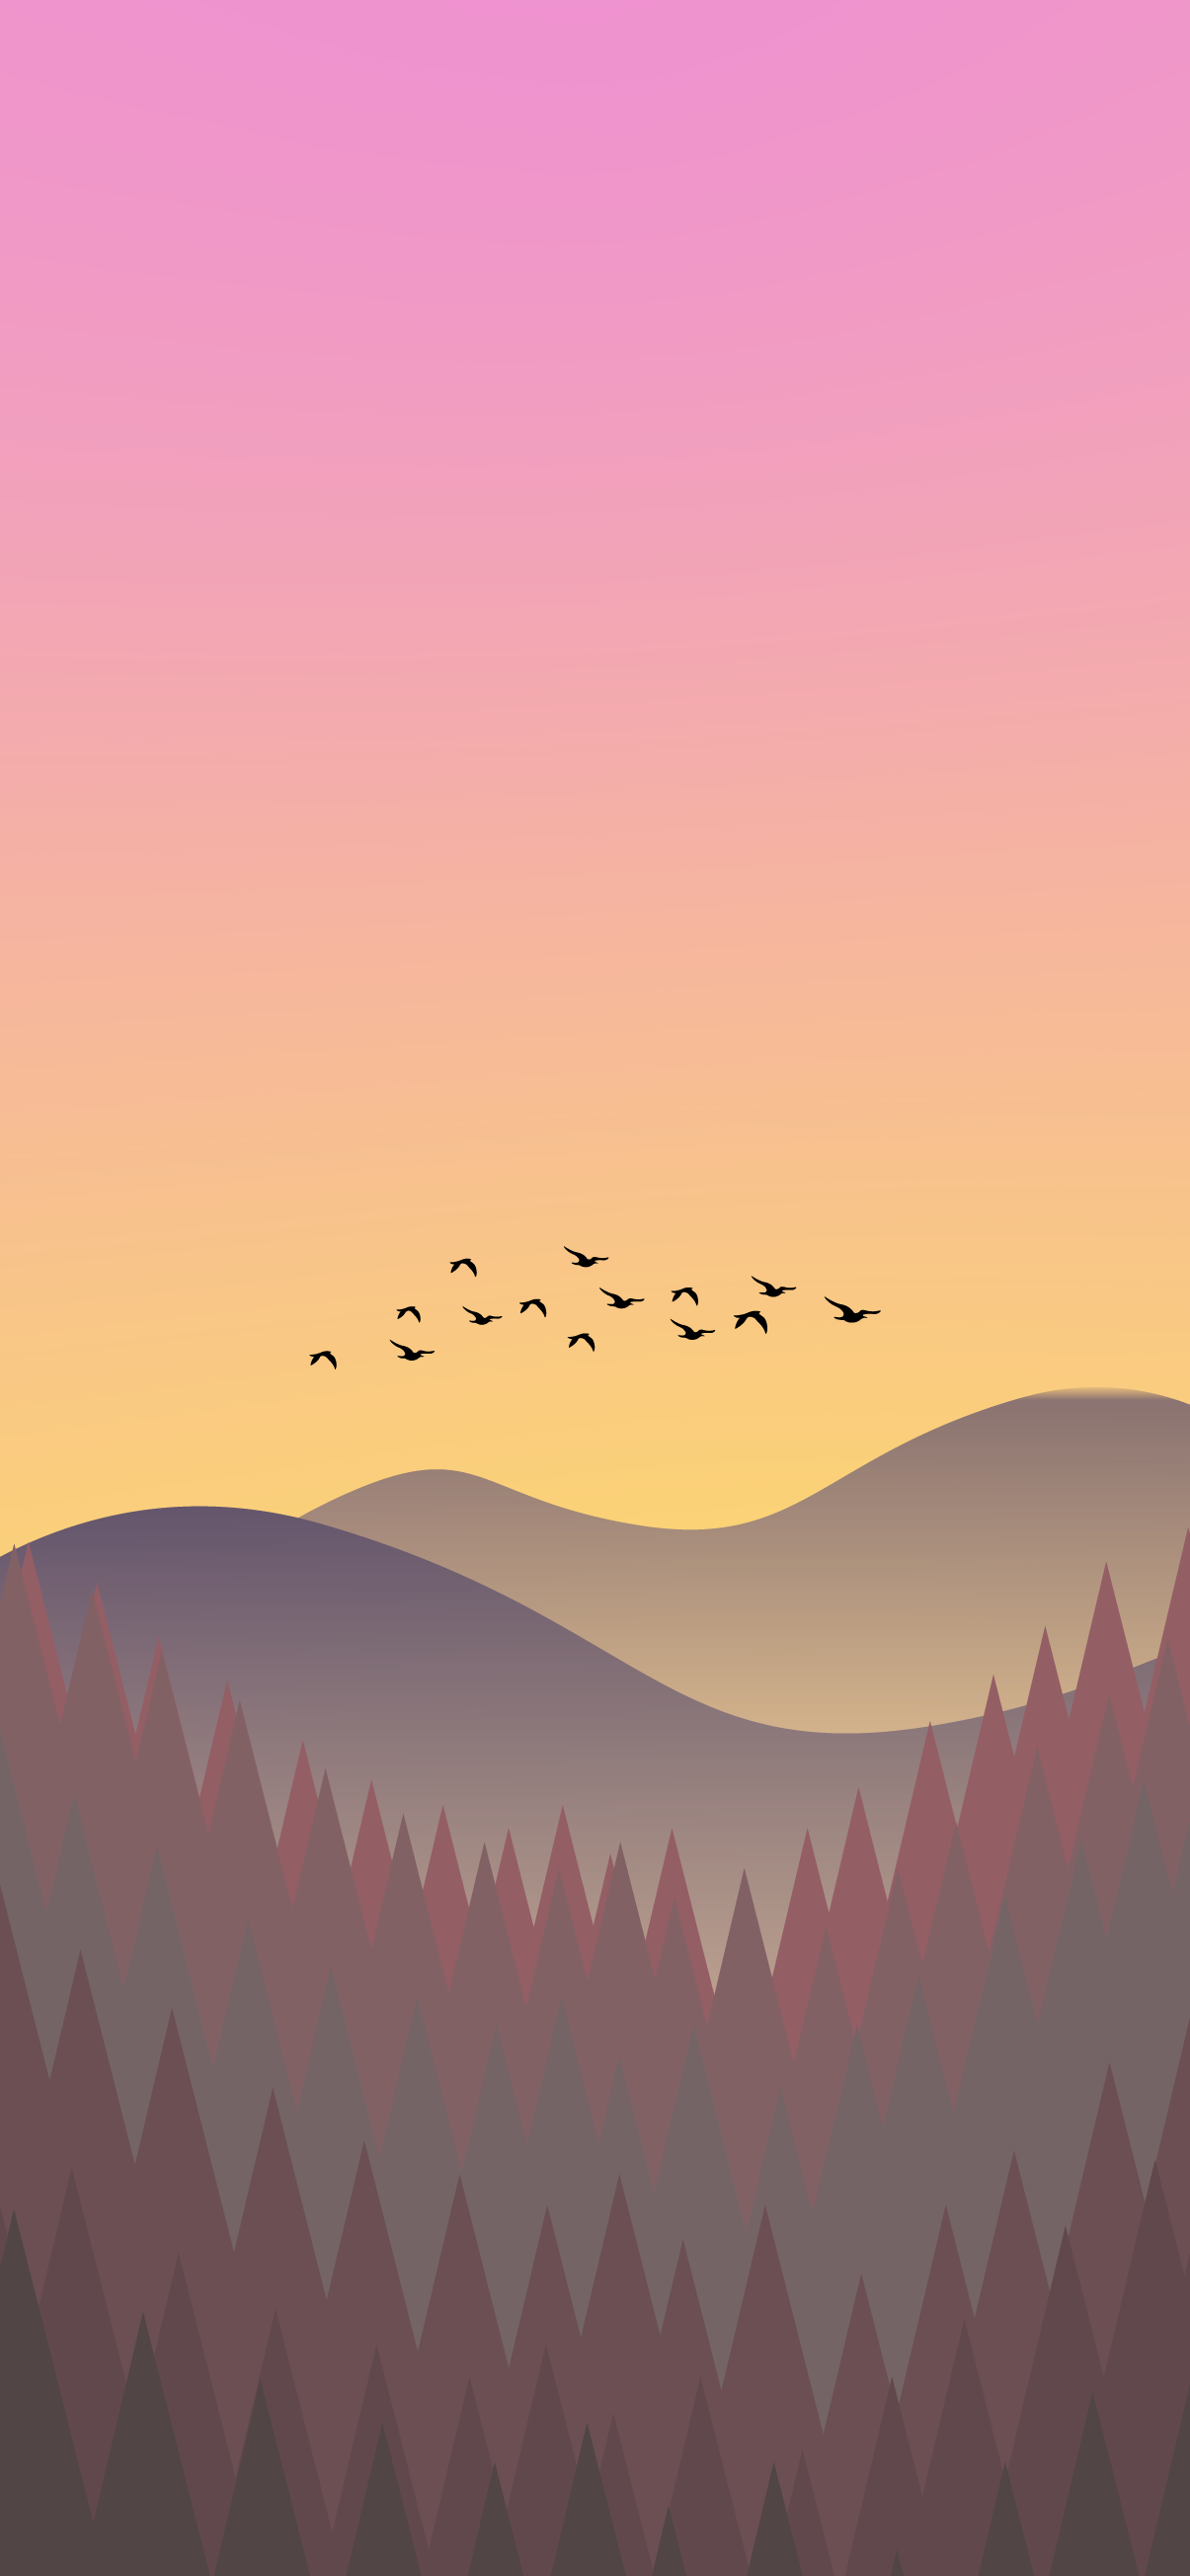 aesthetic view nature wallpaper for iphone